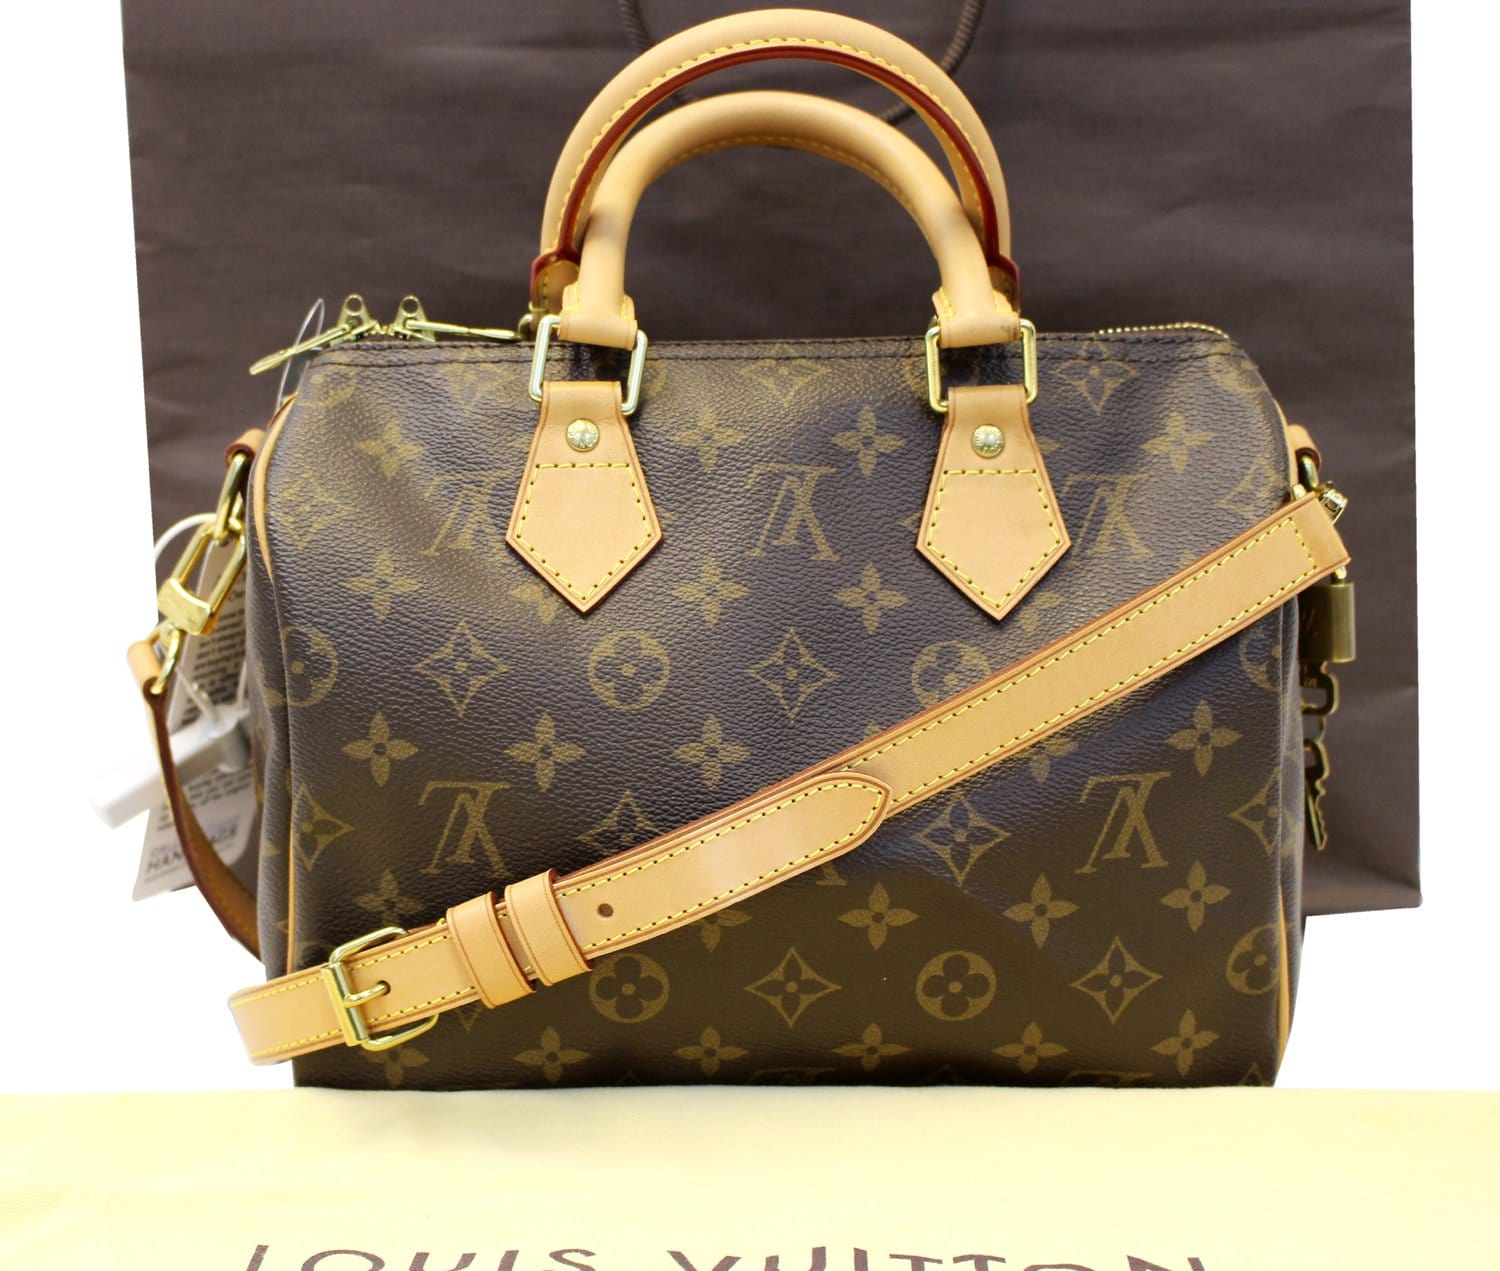 7c3ed2514470 Authentic LOUIS VUITTON Monogram Speedy 25 Bandouliere Satchel Bag TT1748